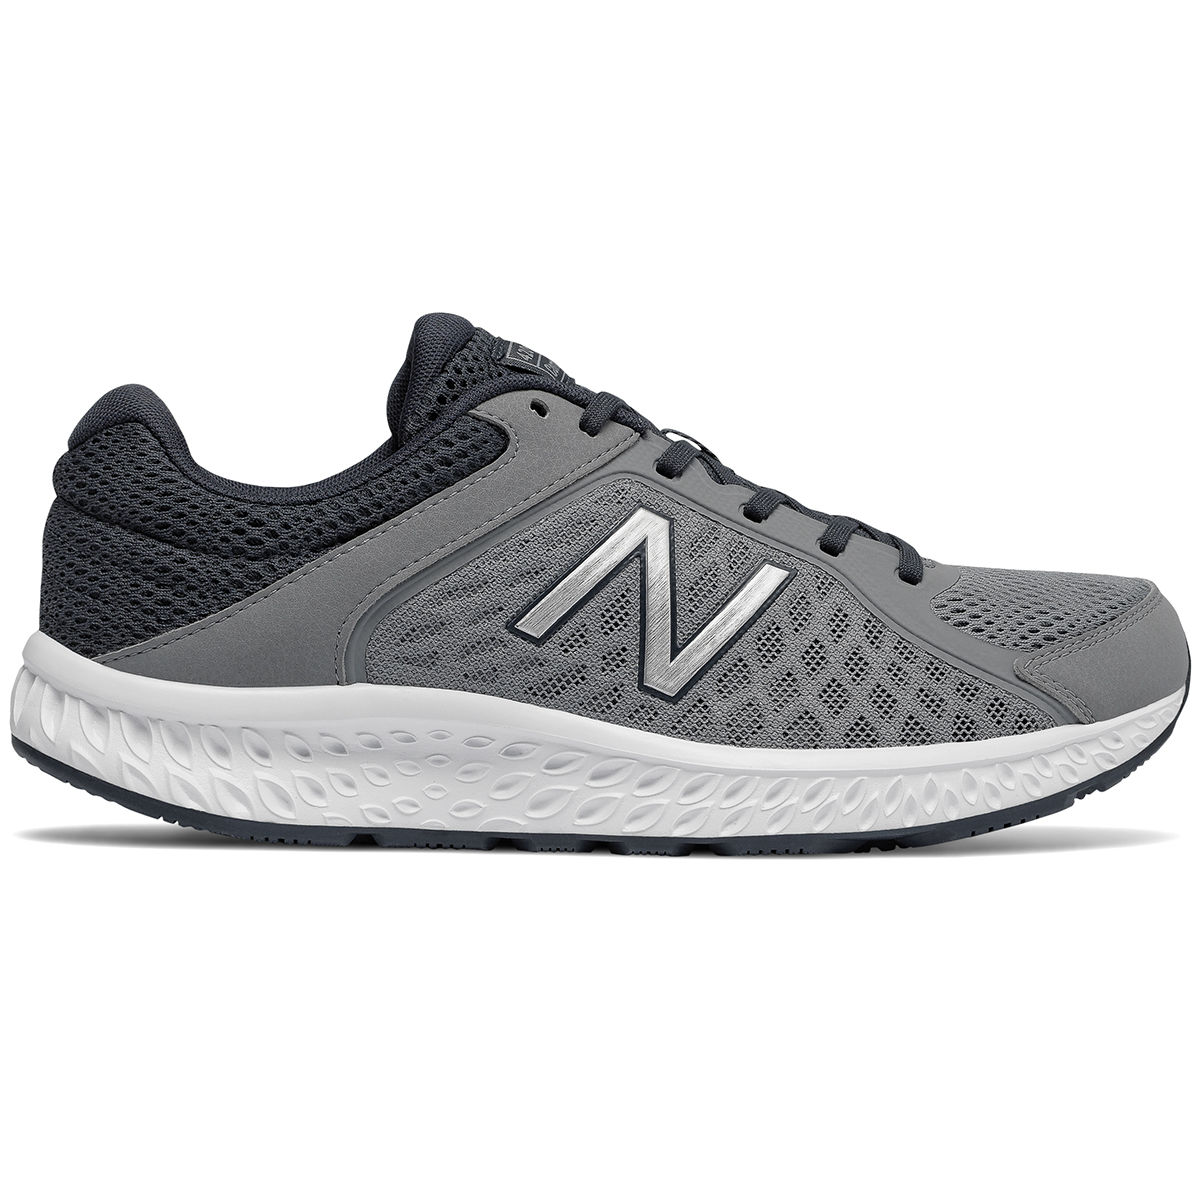 New Balance Men's 420V4 Running Shoes, Wide - Black, 11.5